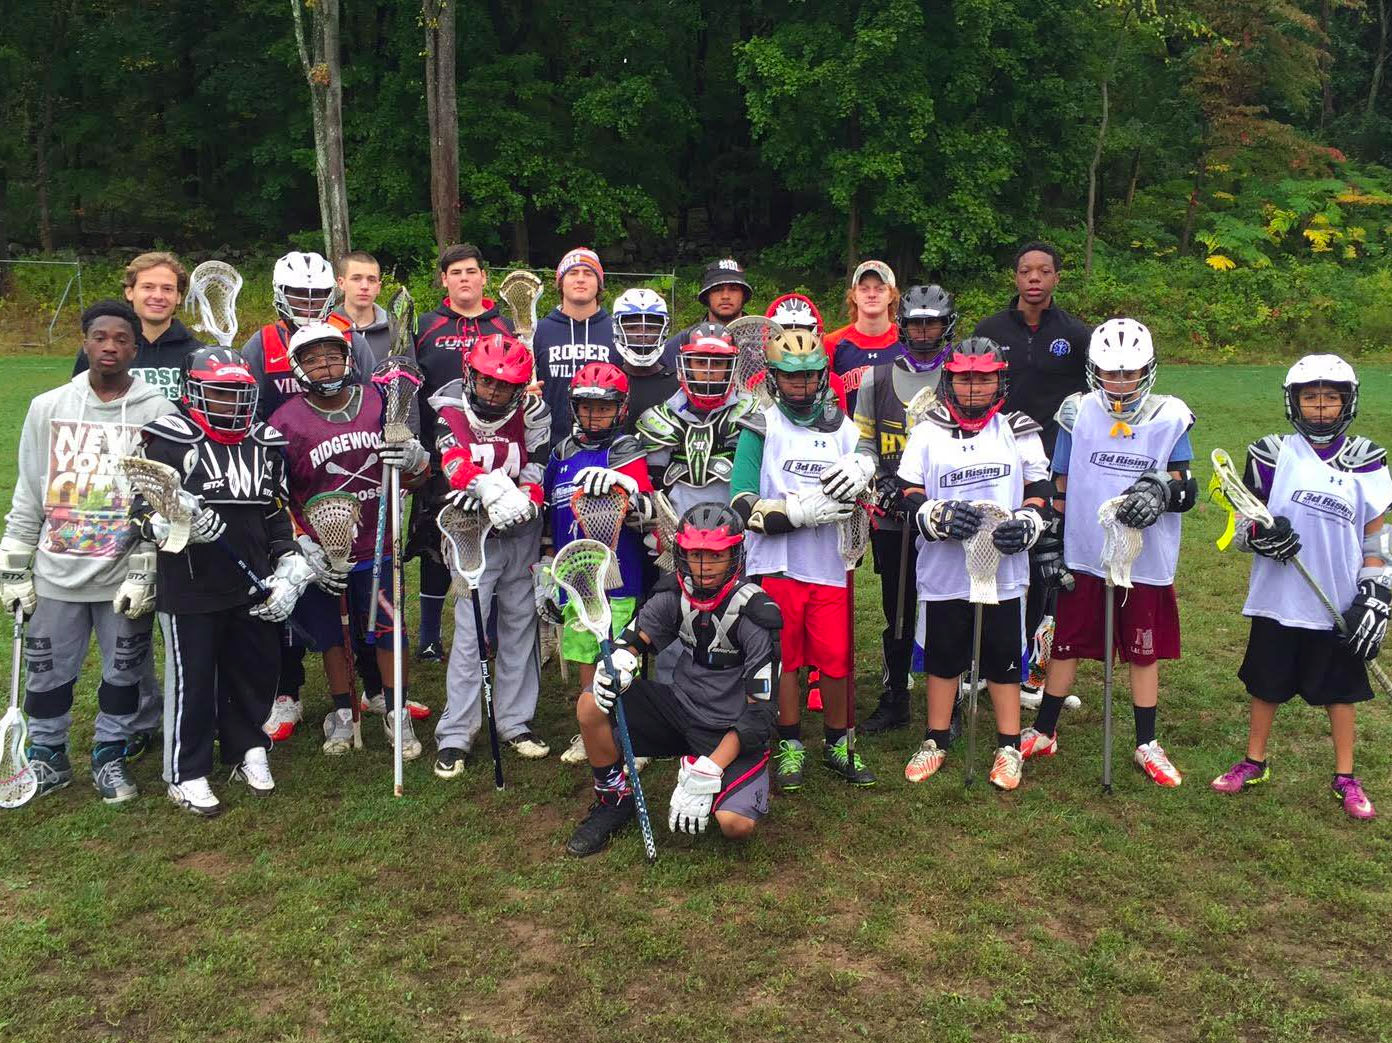 A photo of the Harlem Lacrosse team from PS 149 with another lacrosse team.